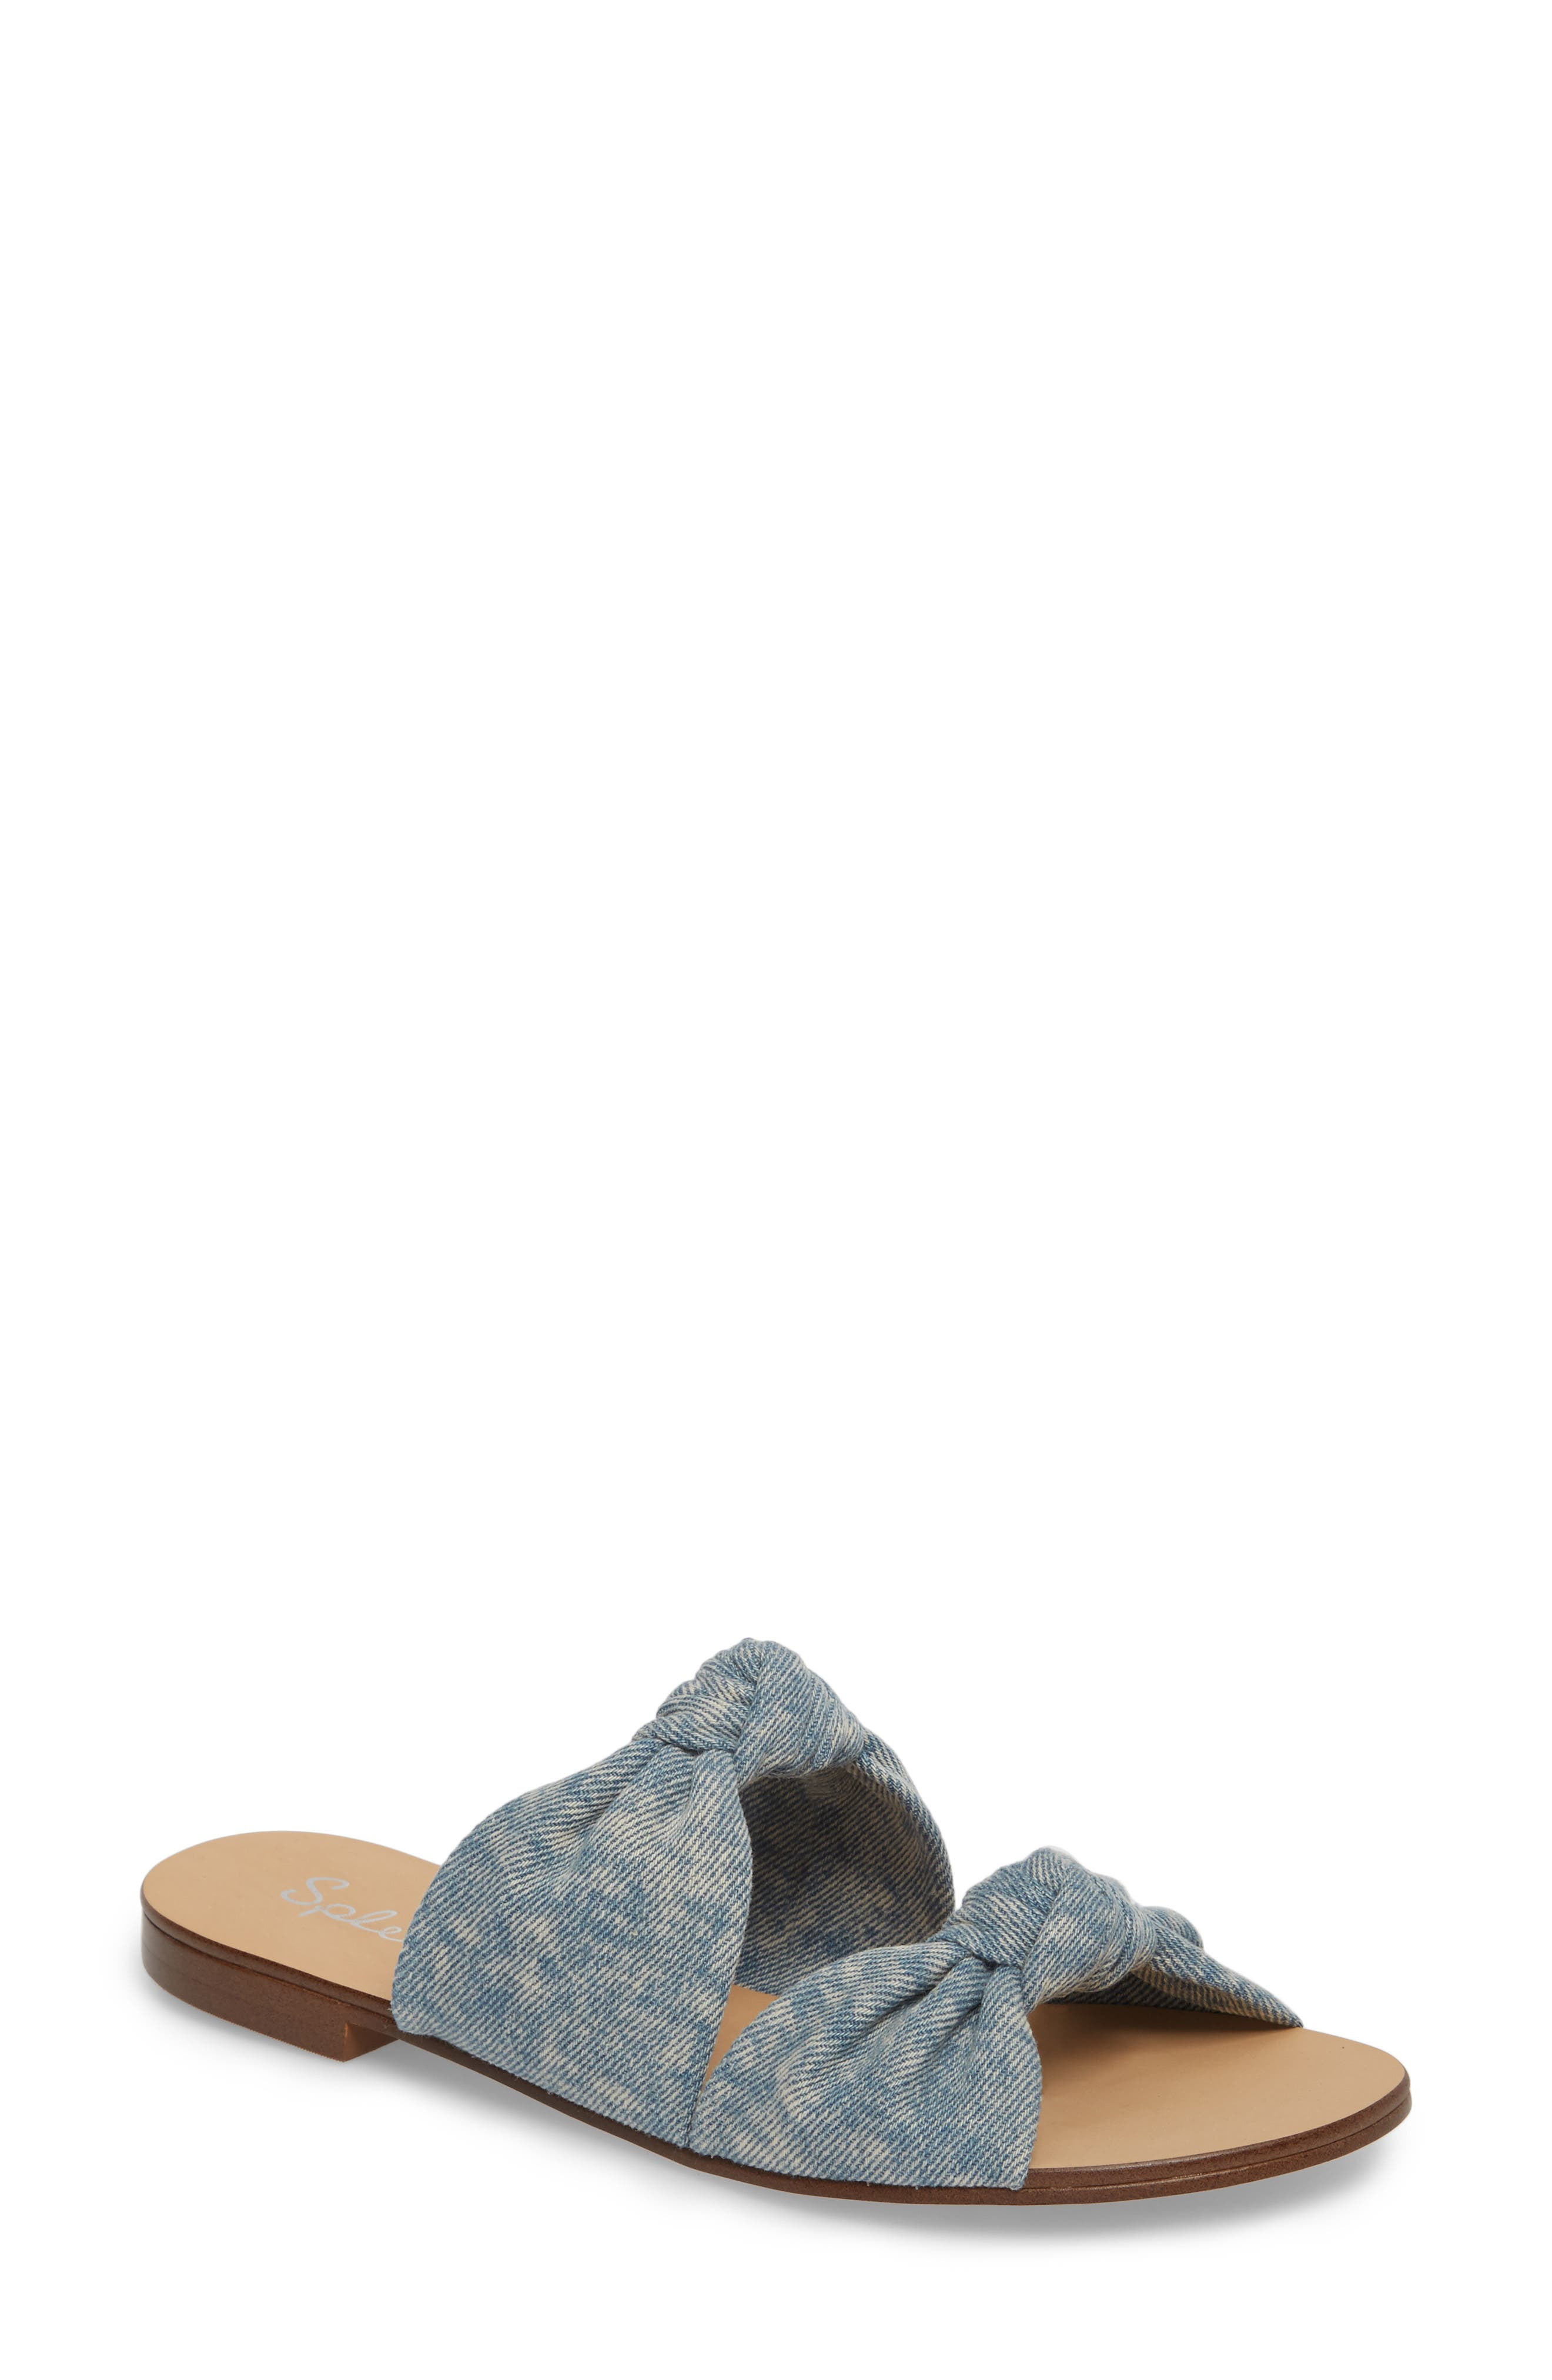 Barton Double Knotted Slide Sandal,                         Main,                         color, Jean Fabric